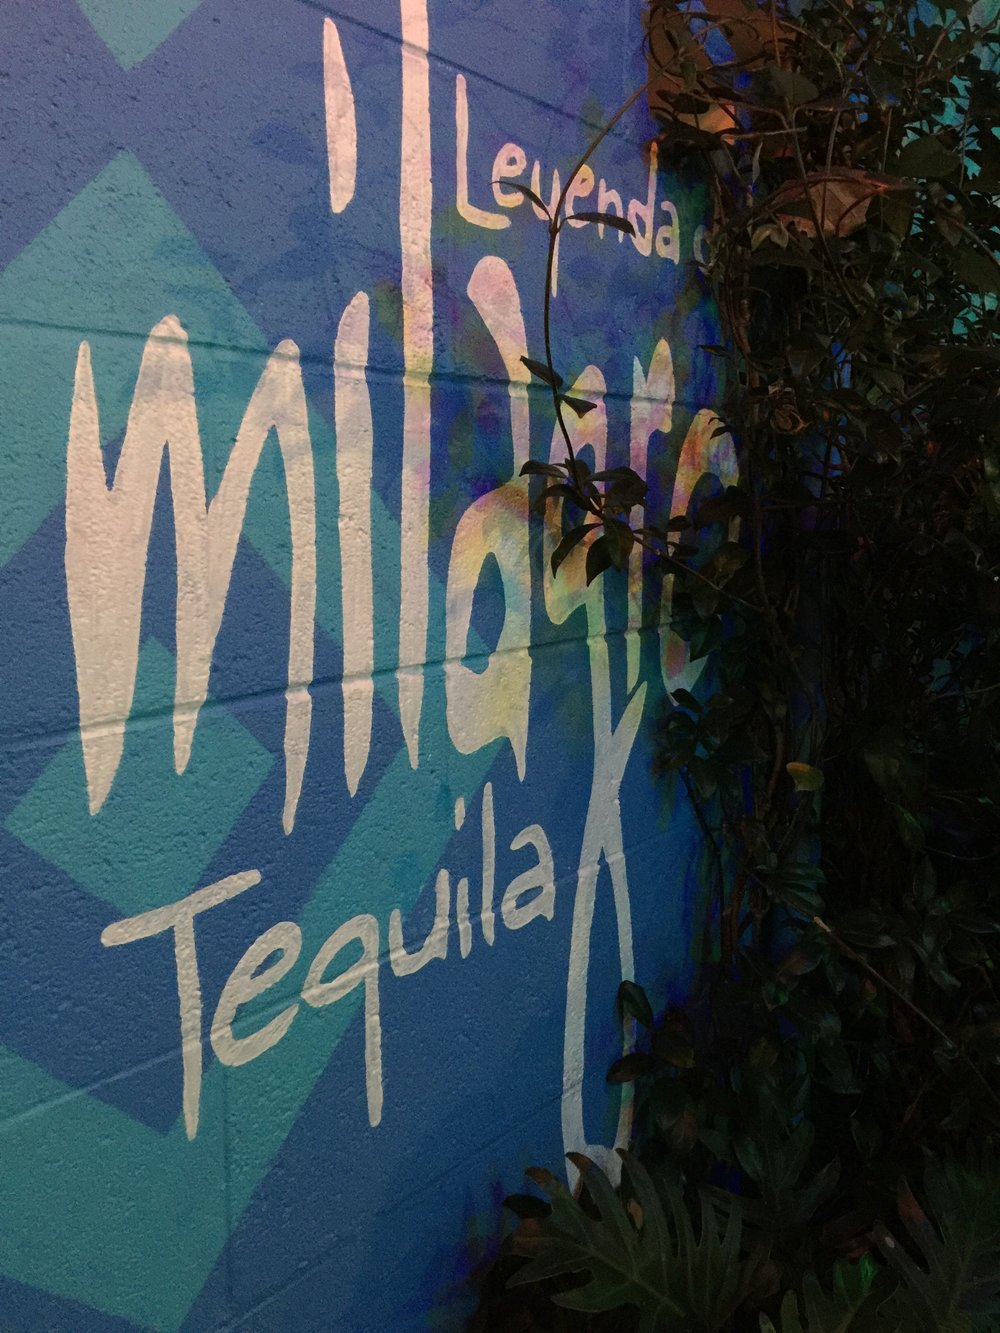 Milagro Tequila sign